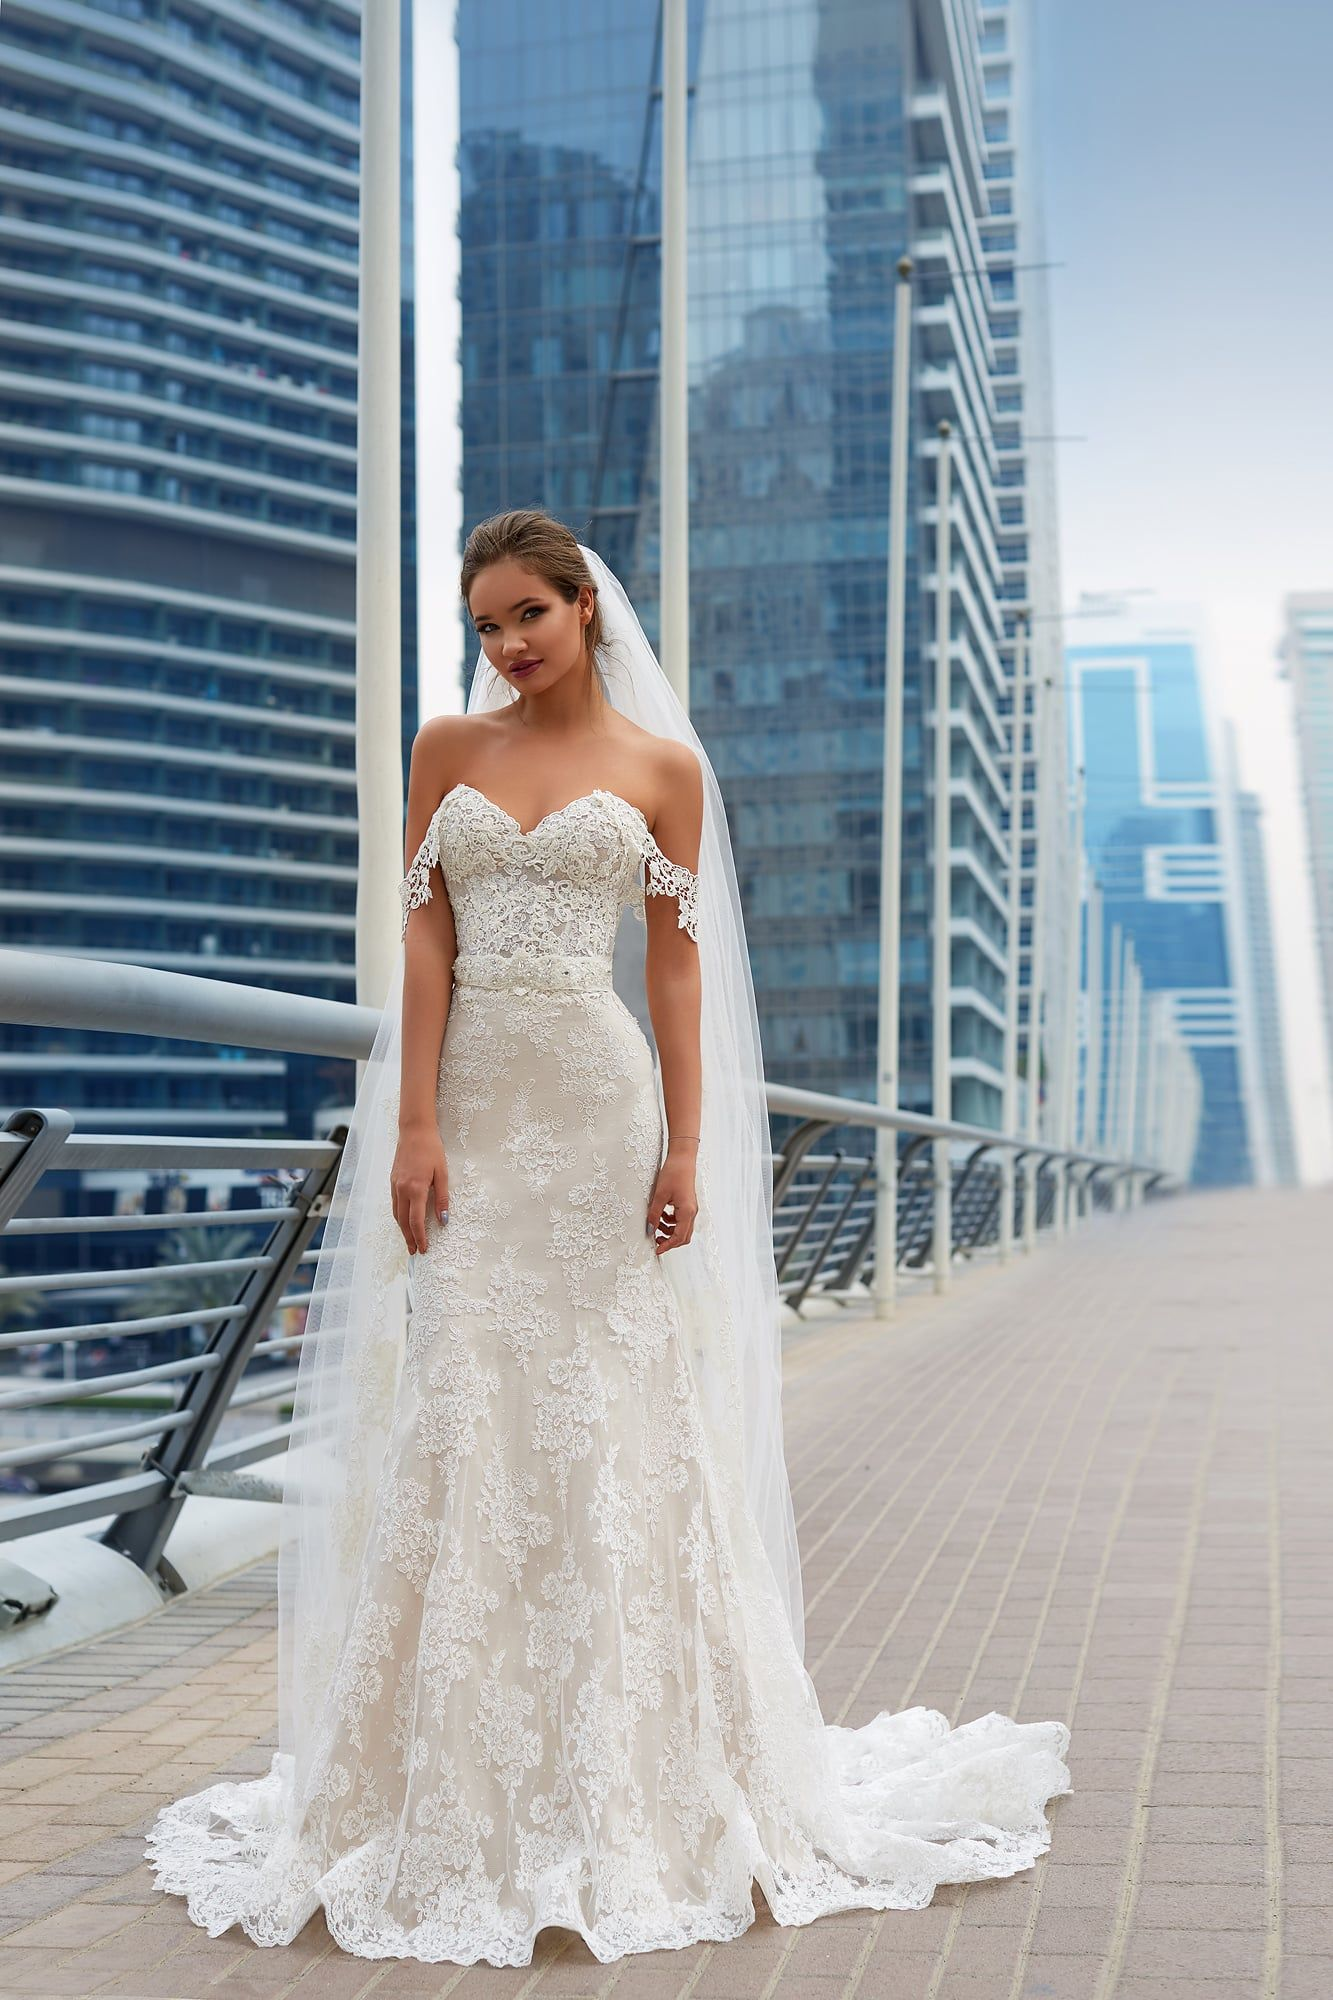 Wedding Dress Lorein Style 2018 Lanesta Couture Charmé Gaby Bridal Gown Boutique Clearwater Fl 727 300 2044